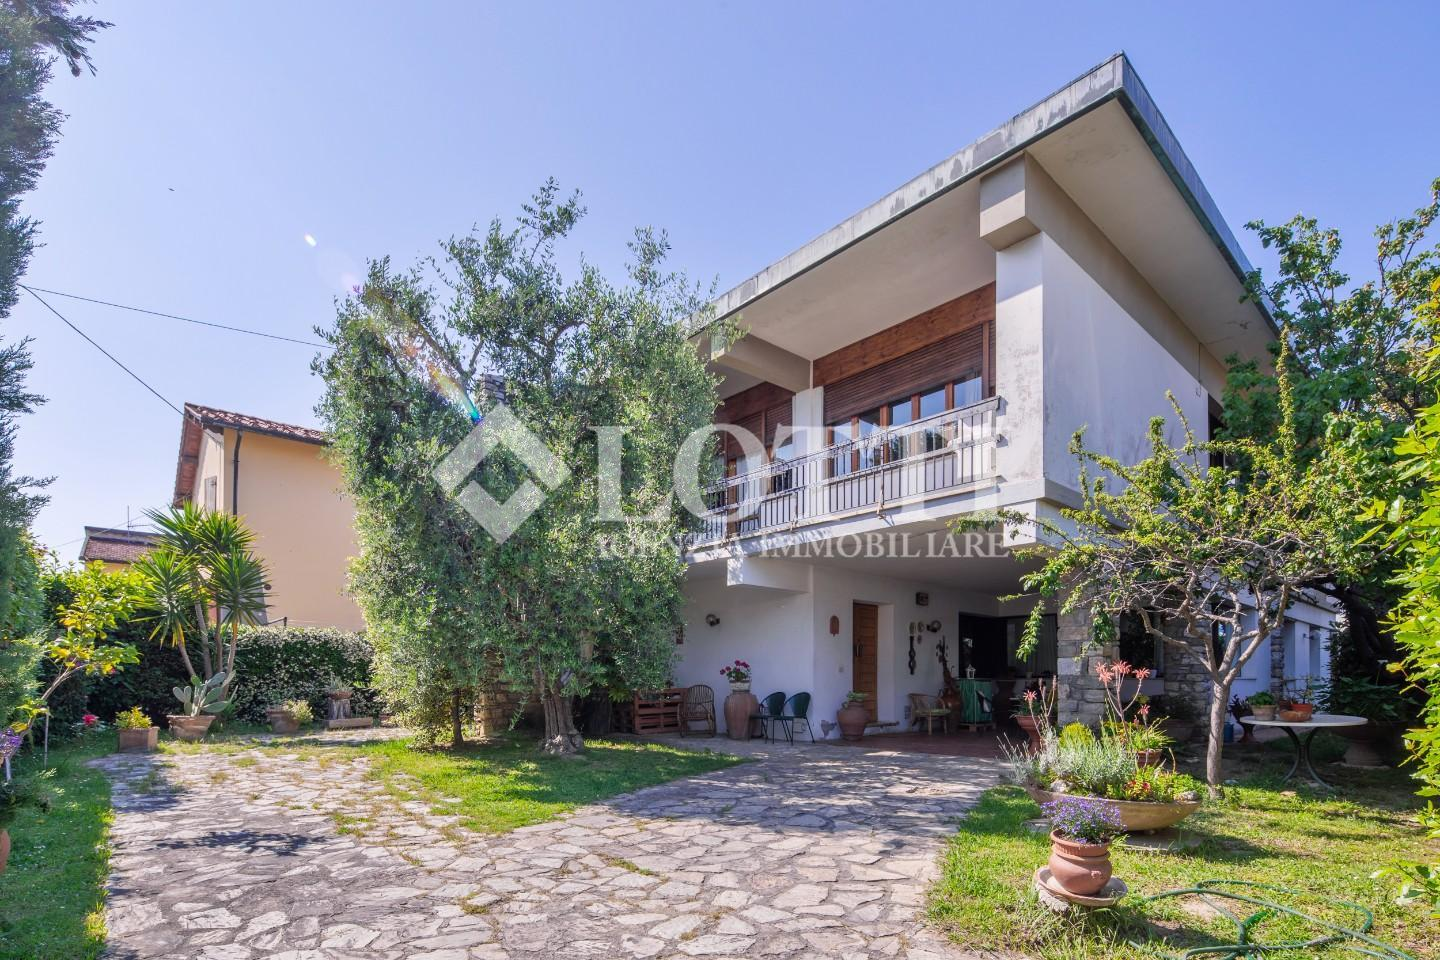 Villa for sale, ref. 625